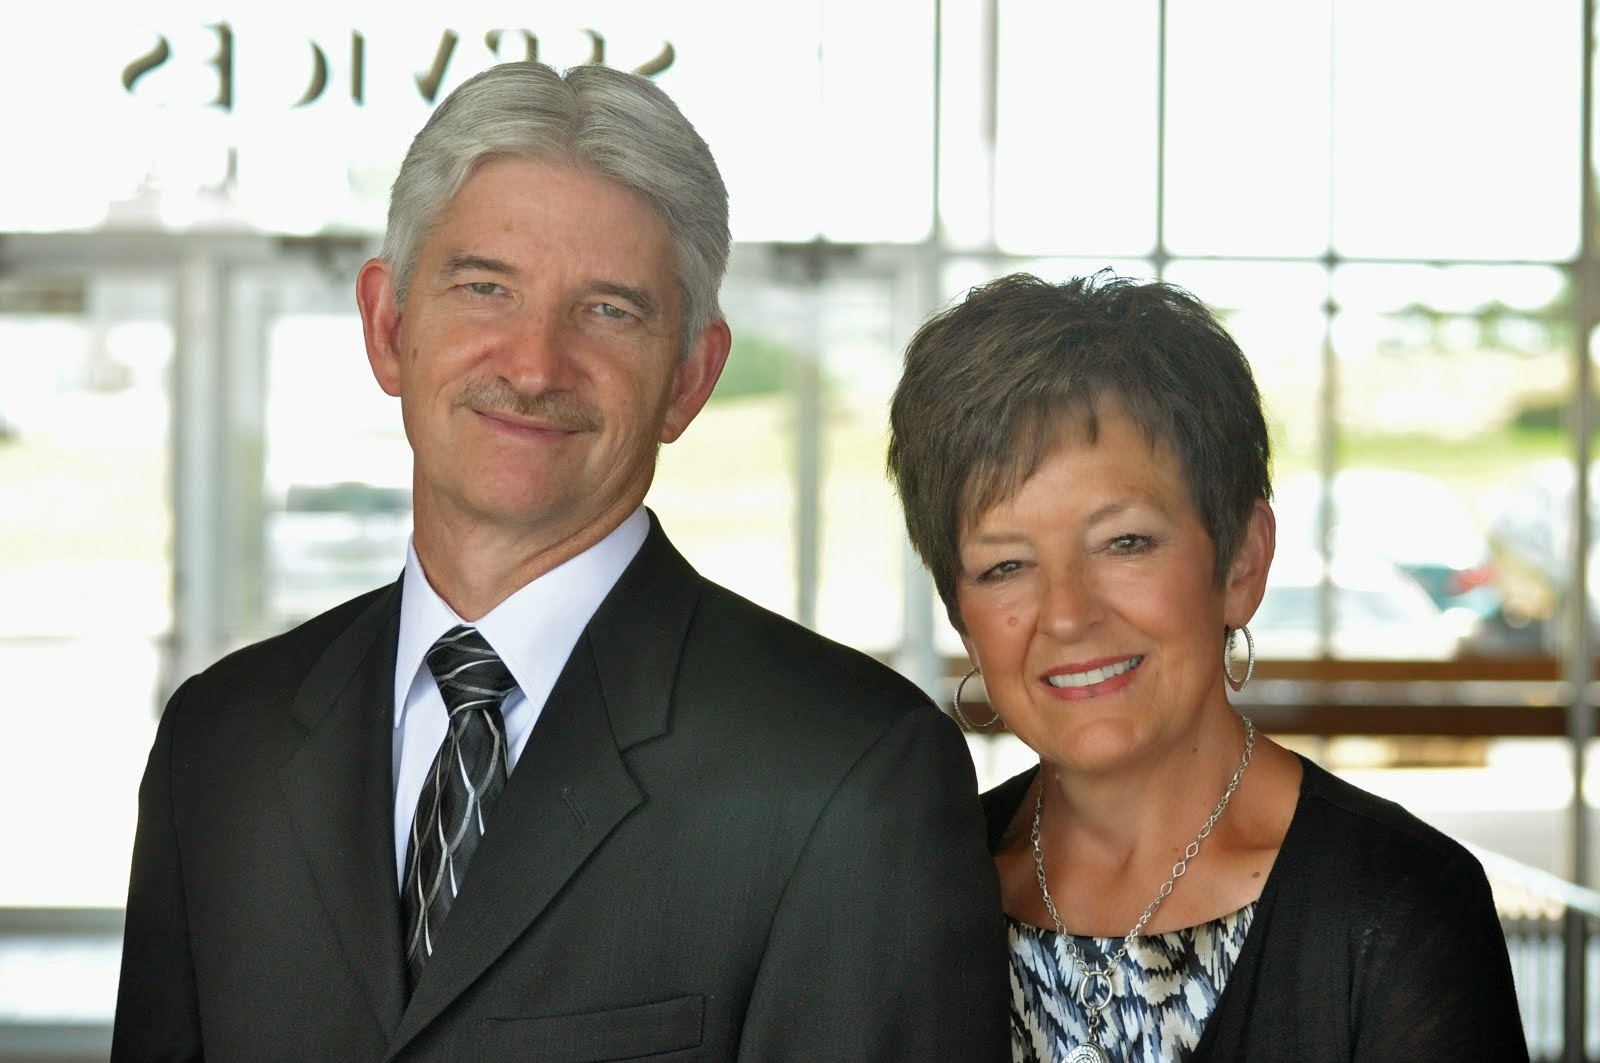 Pastor Joe and his wife Laura